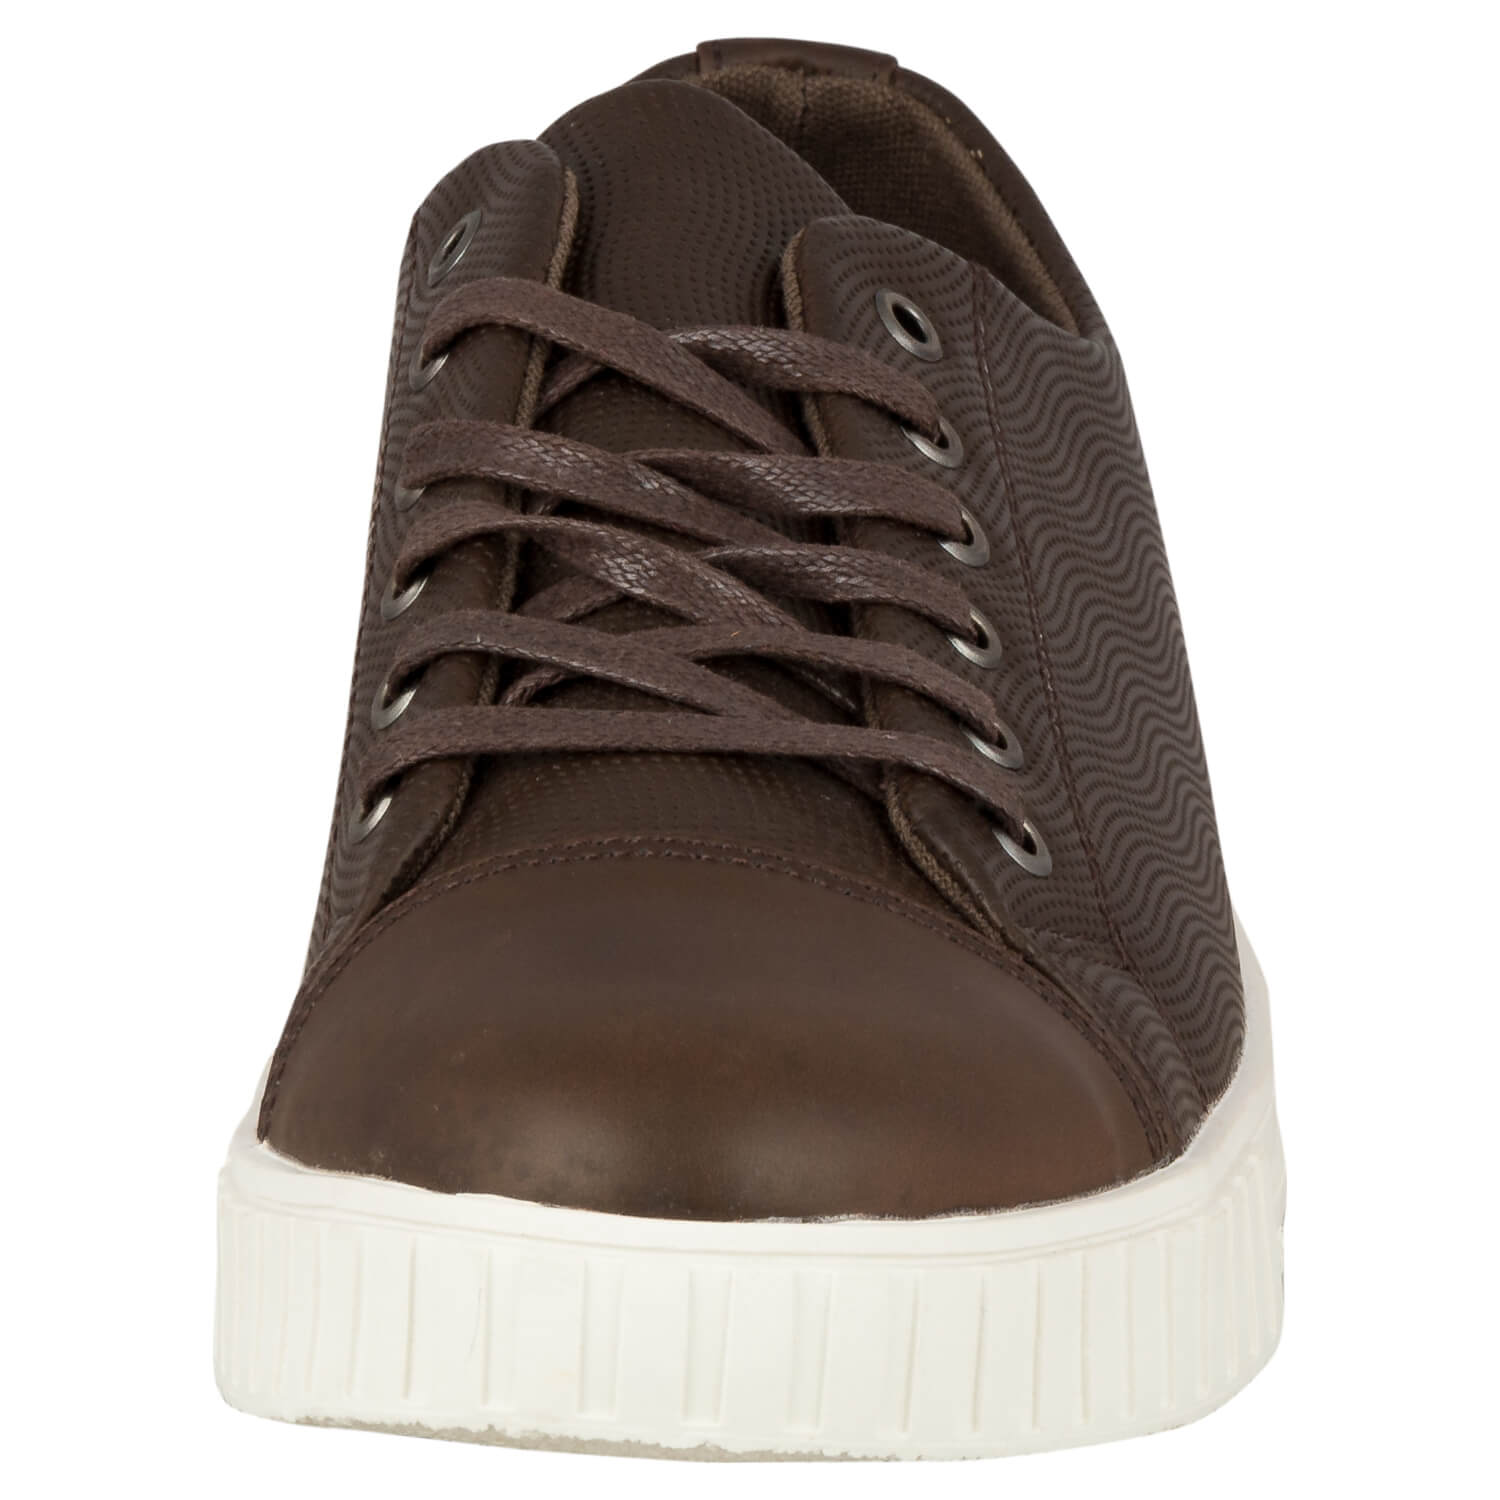 CASUAL LACE UP- BROWN 11